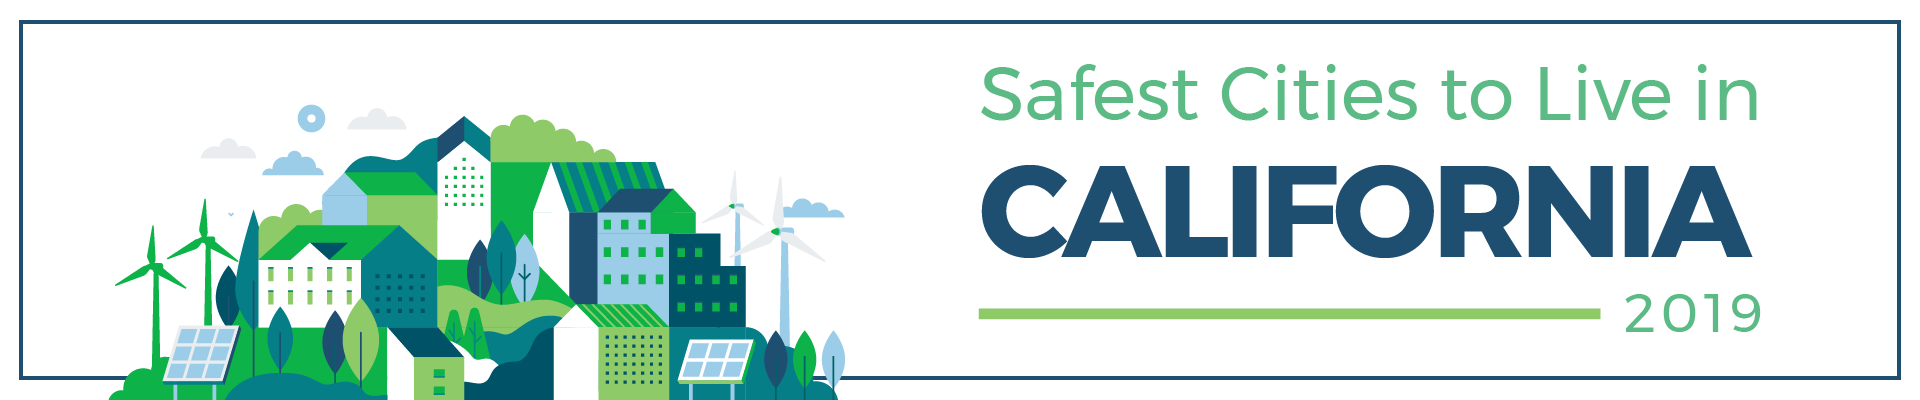 header - safest_cities_california_2019